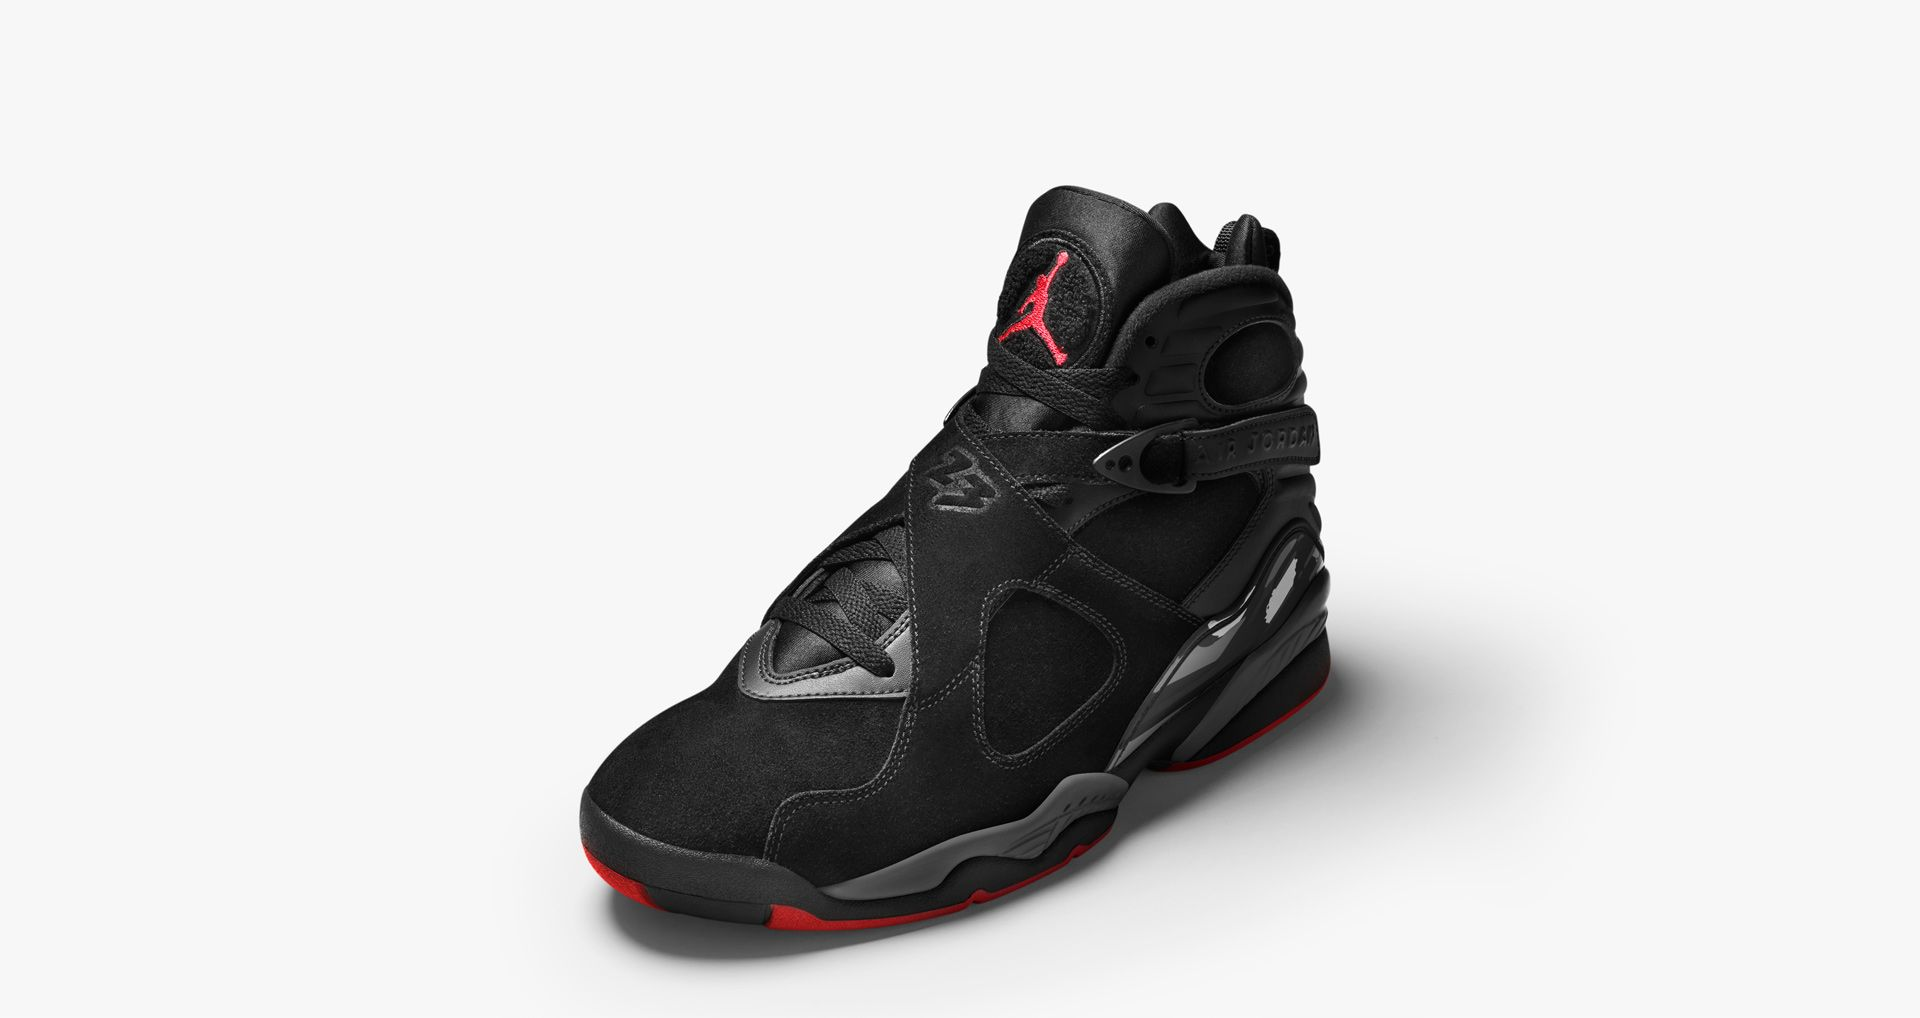 official photos 78fae 23887 Air Jordan 8 Retro 'Black & Gym Red' Release Date. Nike⁠+ SNKRS